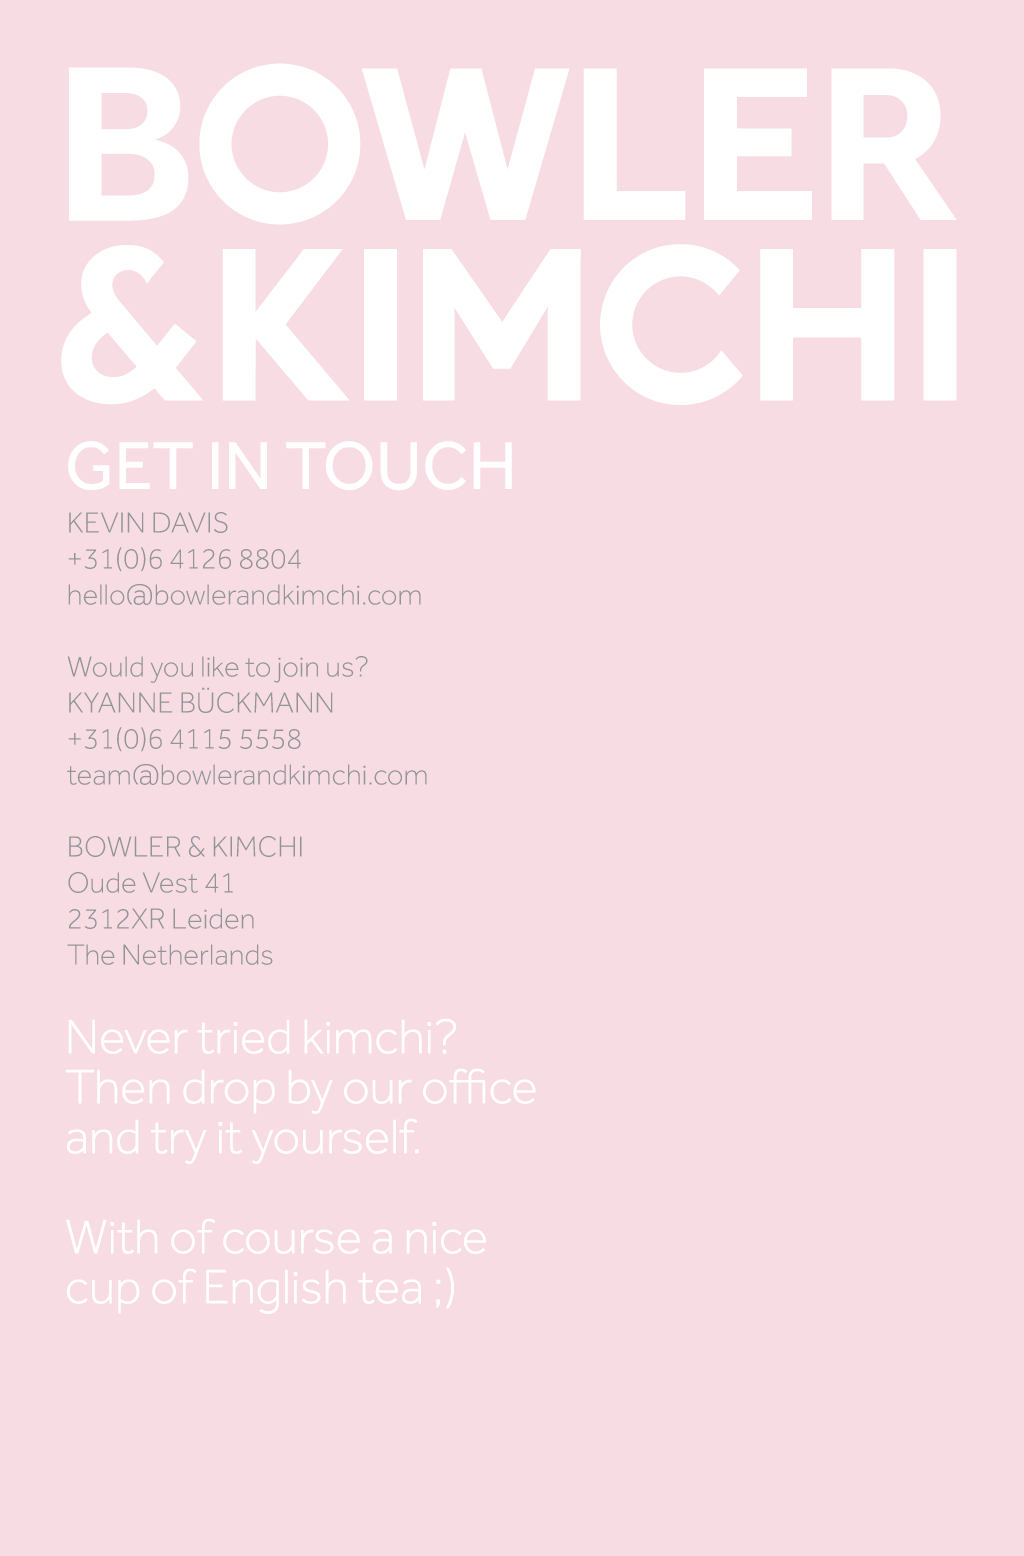 Contact Bowler and Kimchi. Get in touch.